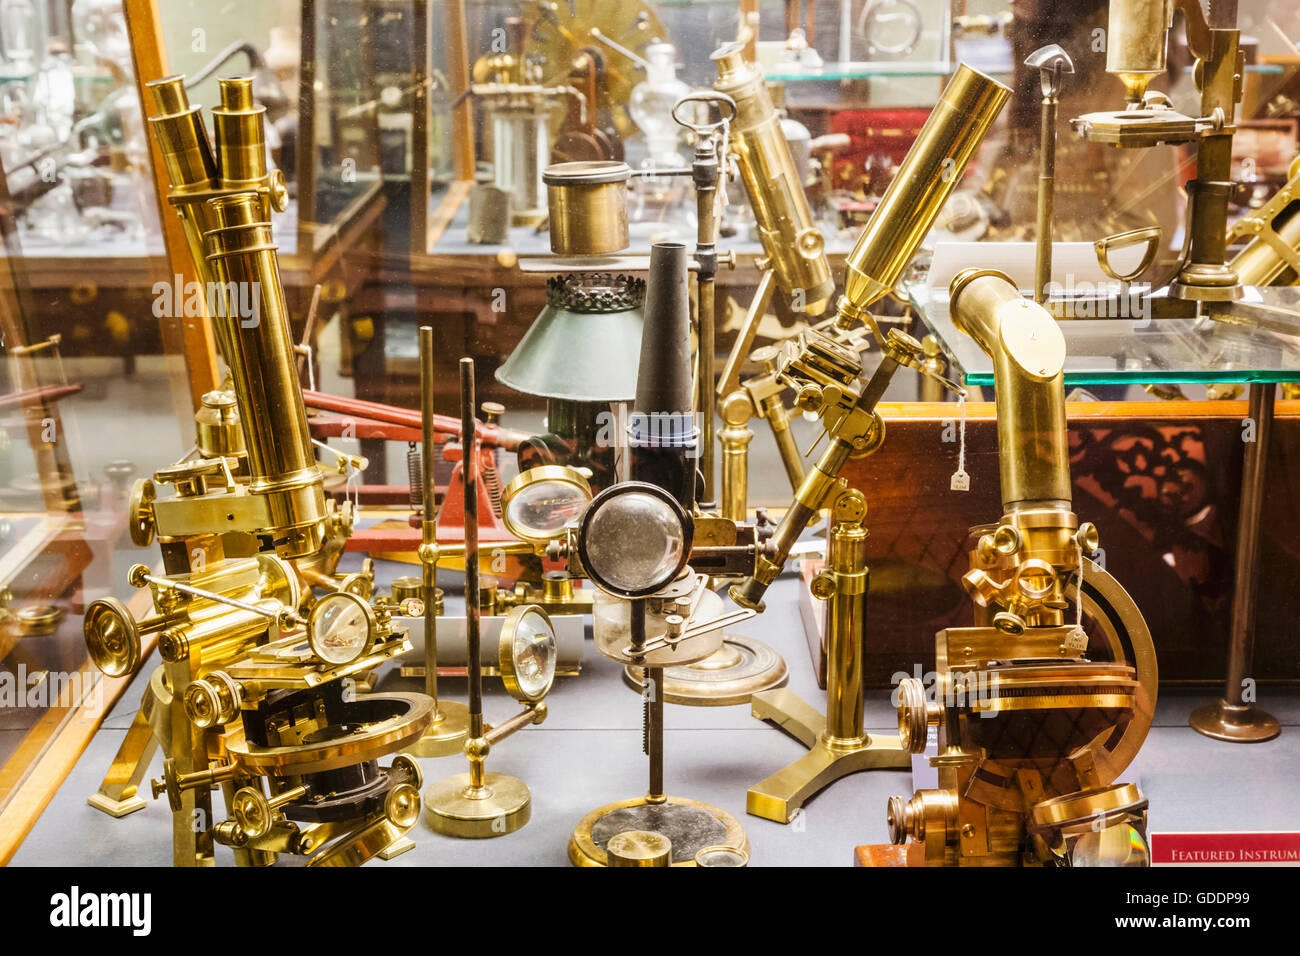 England,Oxfordshire,Oxford,Museum of the History of Science,Display of Historical Scientific Instruments - Stock Image